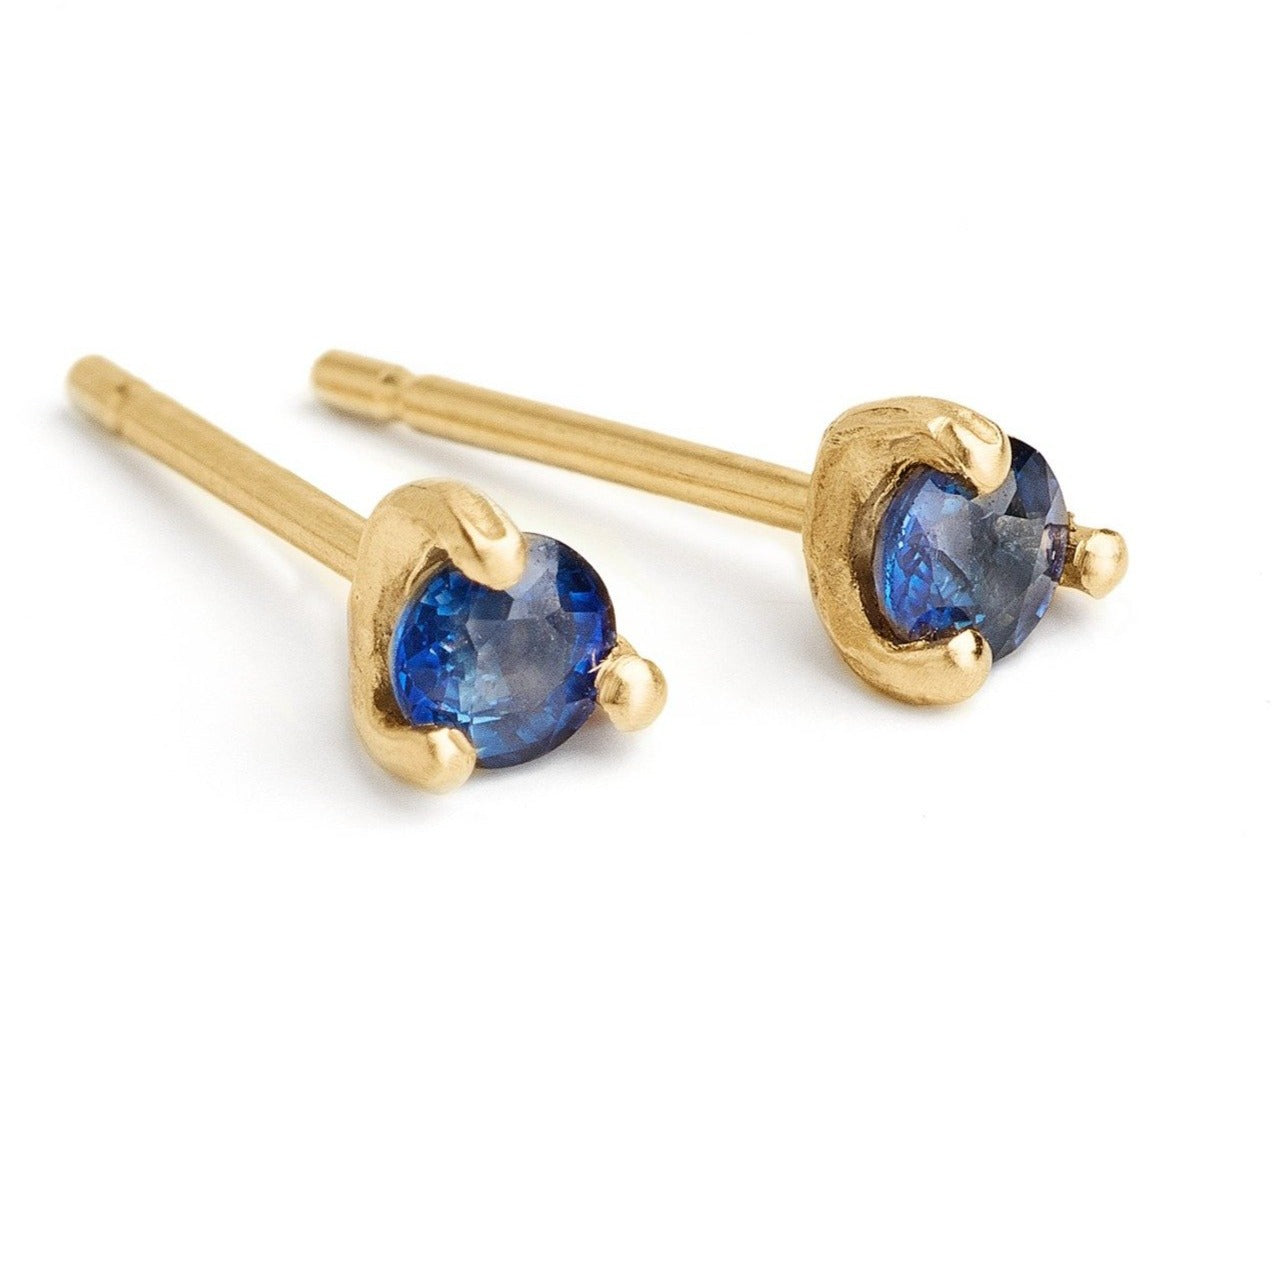 deep blue sapphire small studs, delicate studs set in 14kt gold